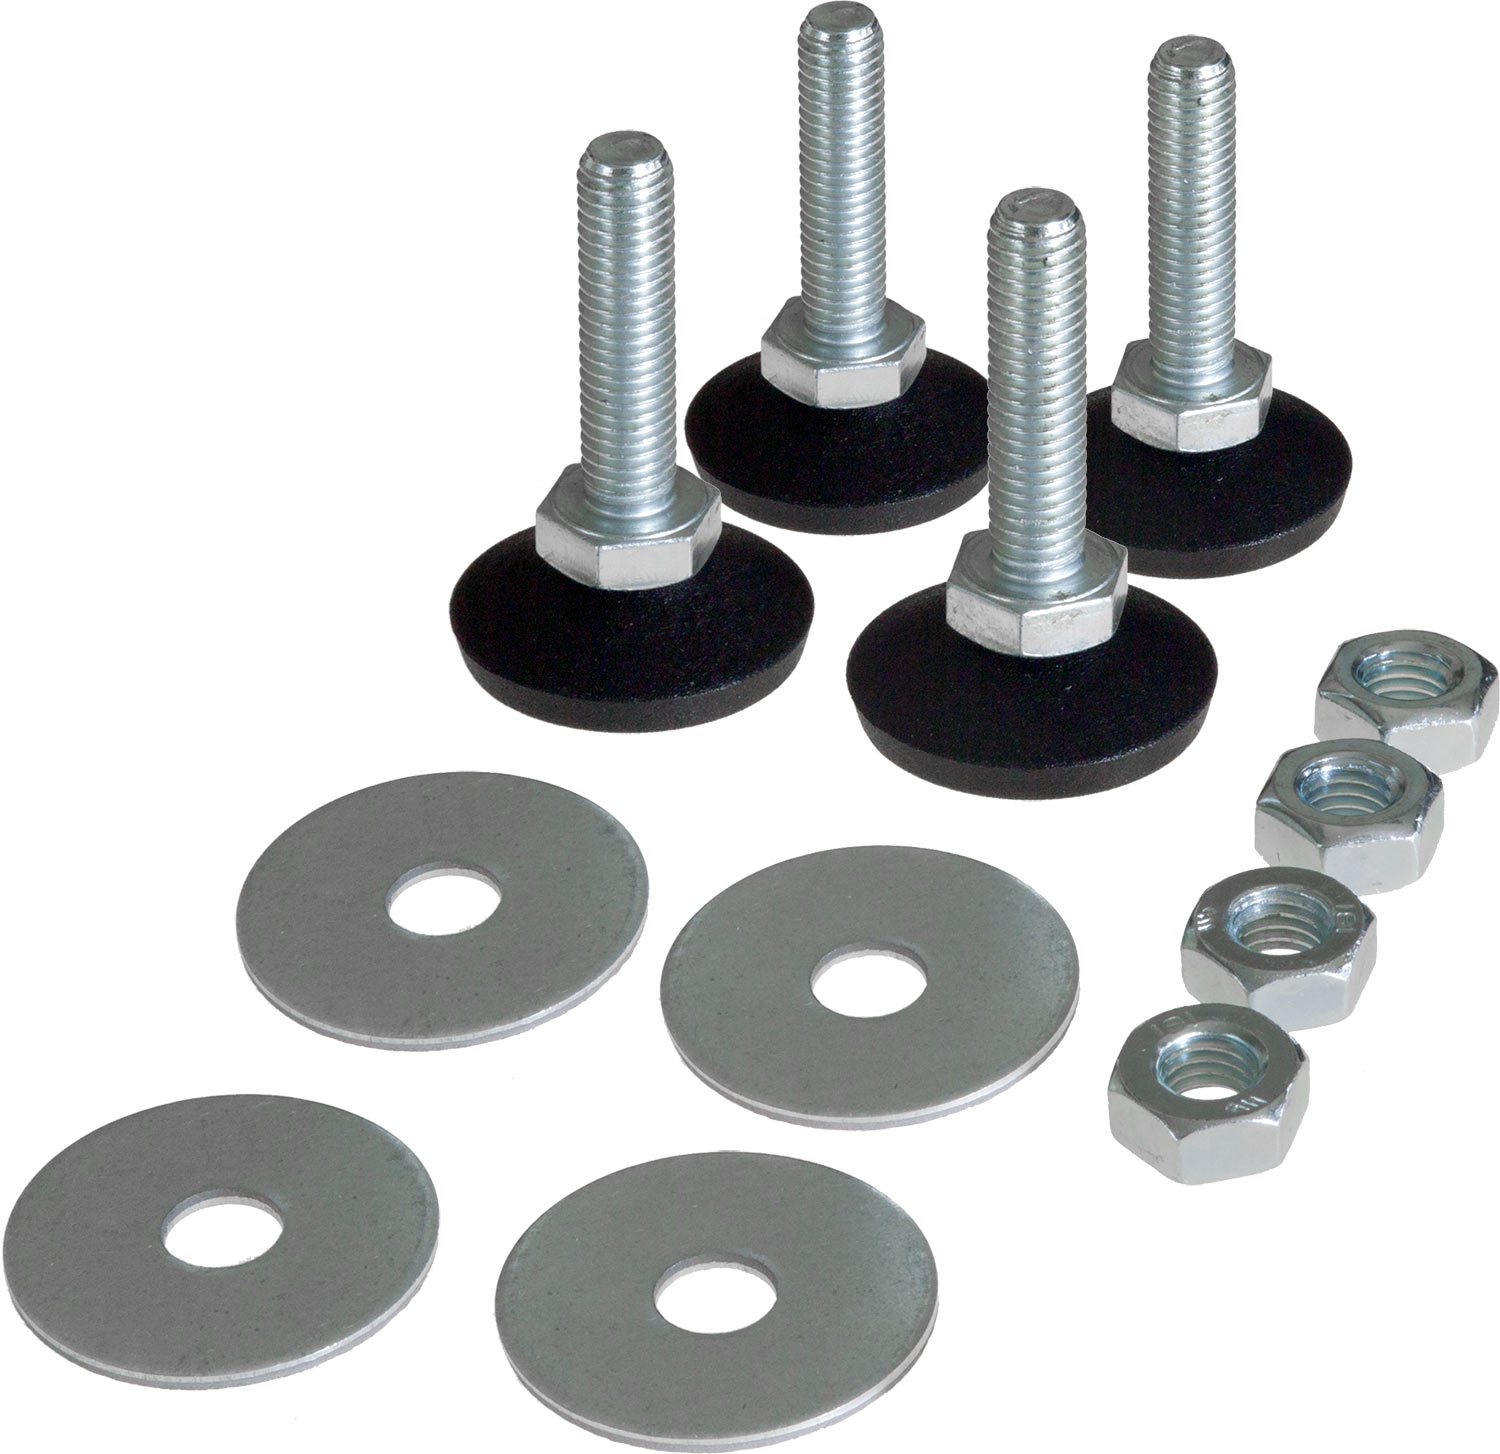 Ew Series 4 Leveling Feet Kit For Ew Series Cabinets